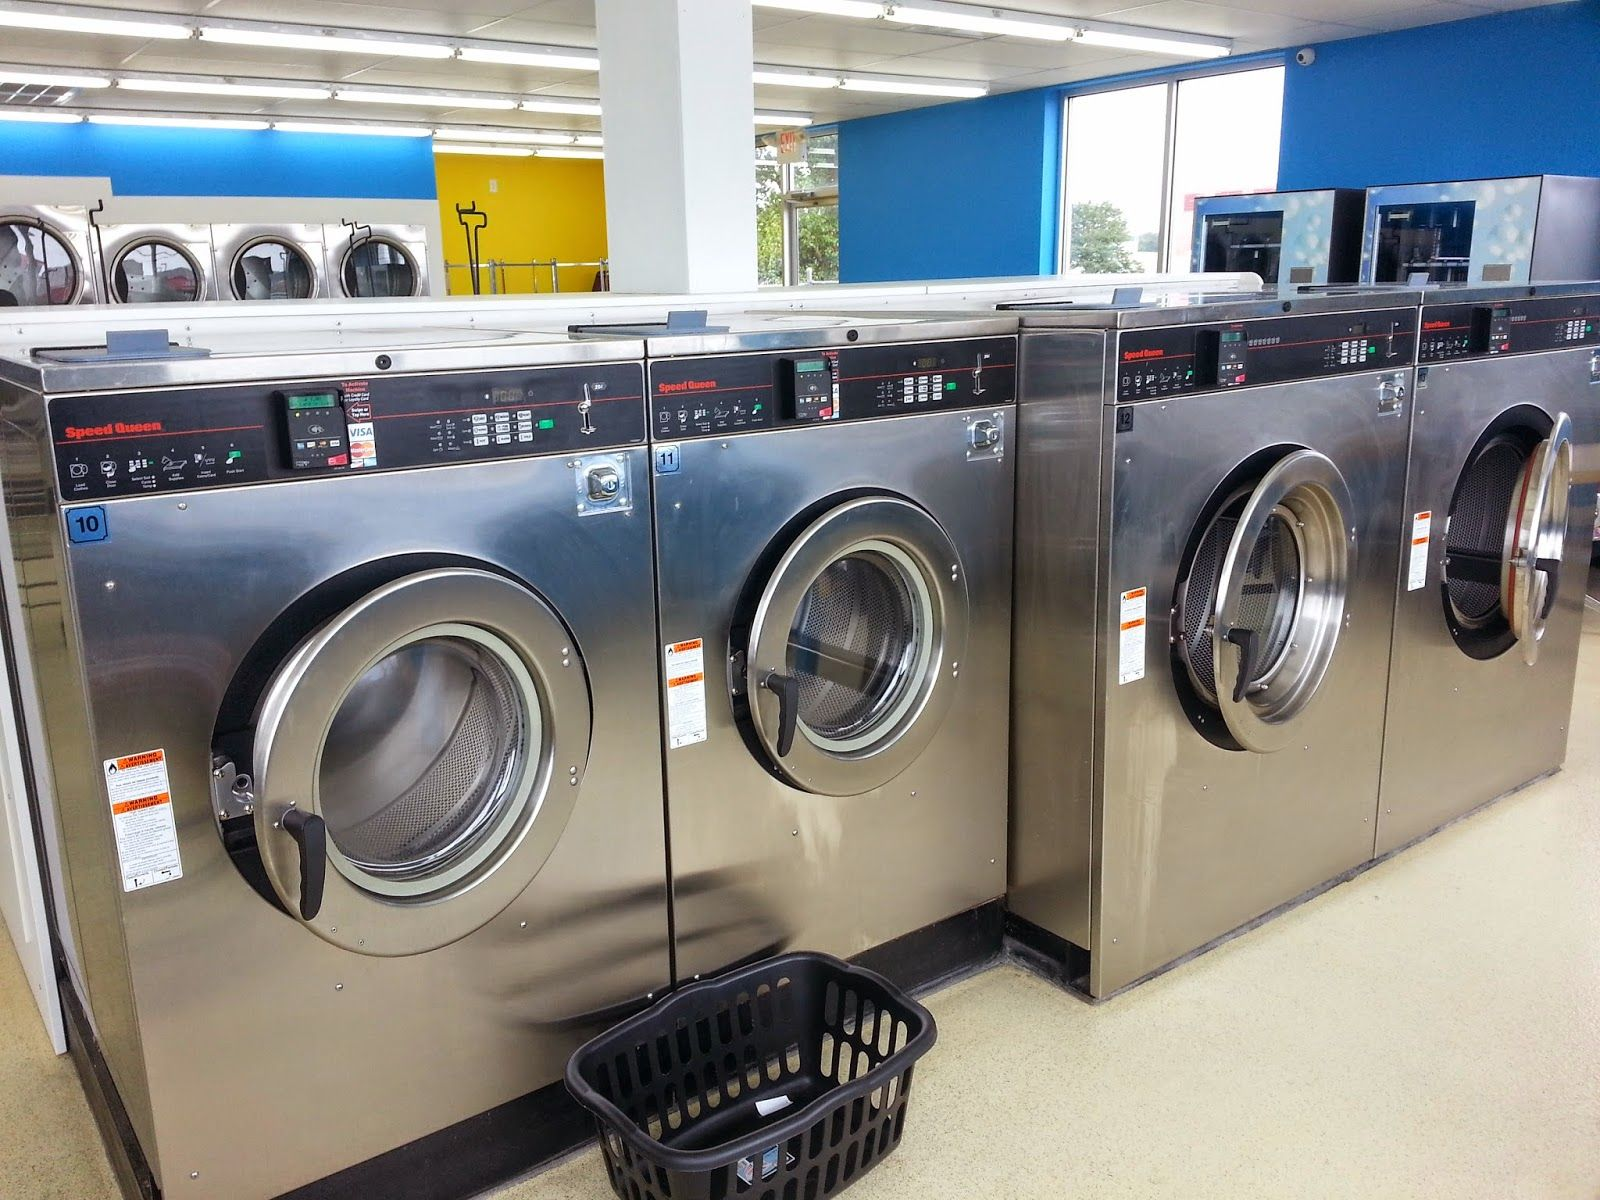 Laundry Dry Cleaning Business In Nigeria Thinky Business Dry